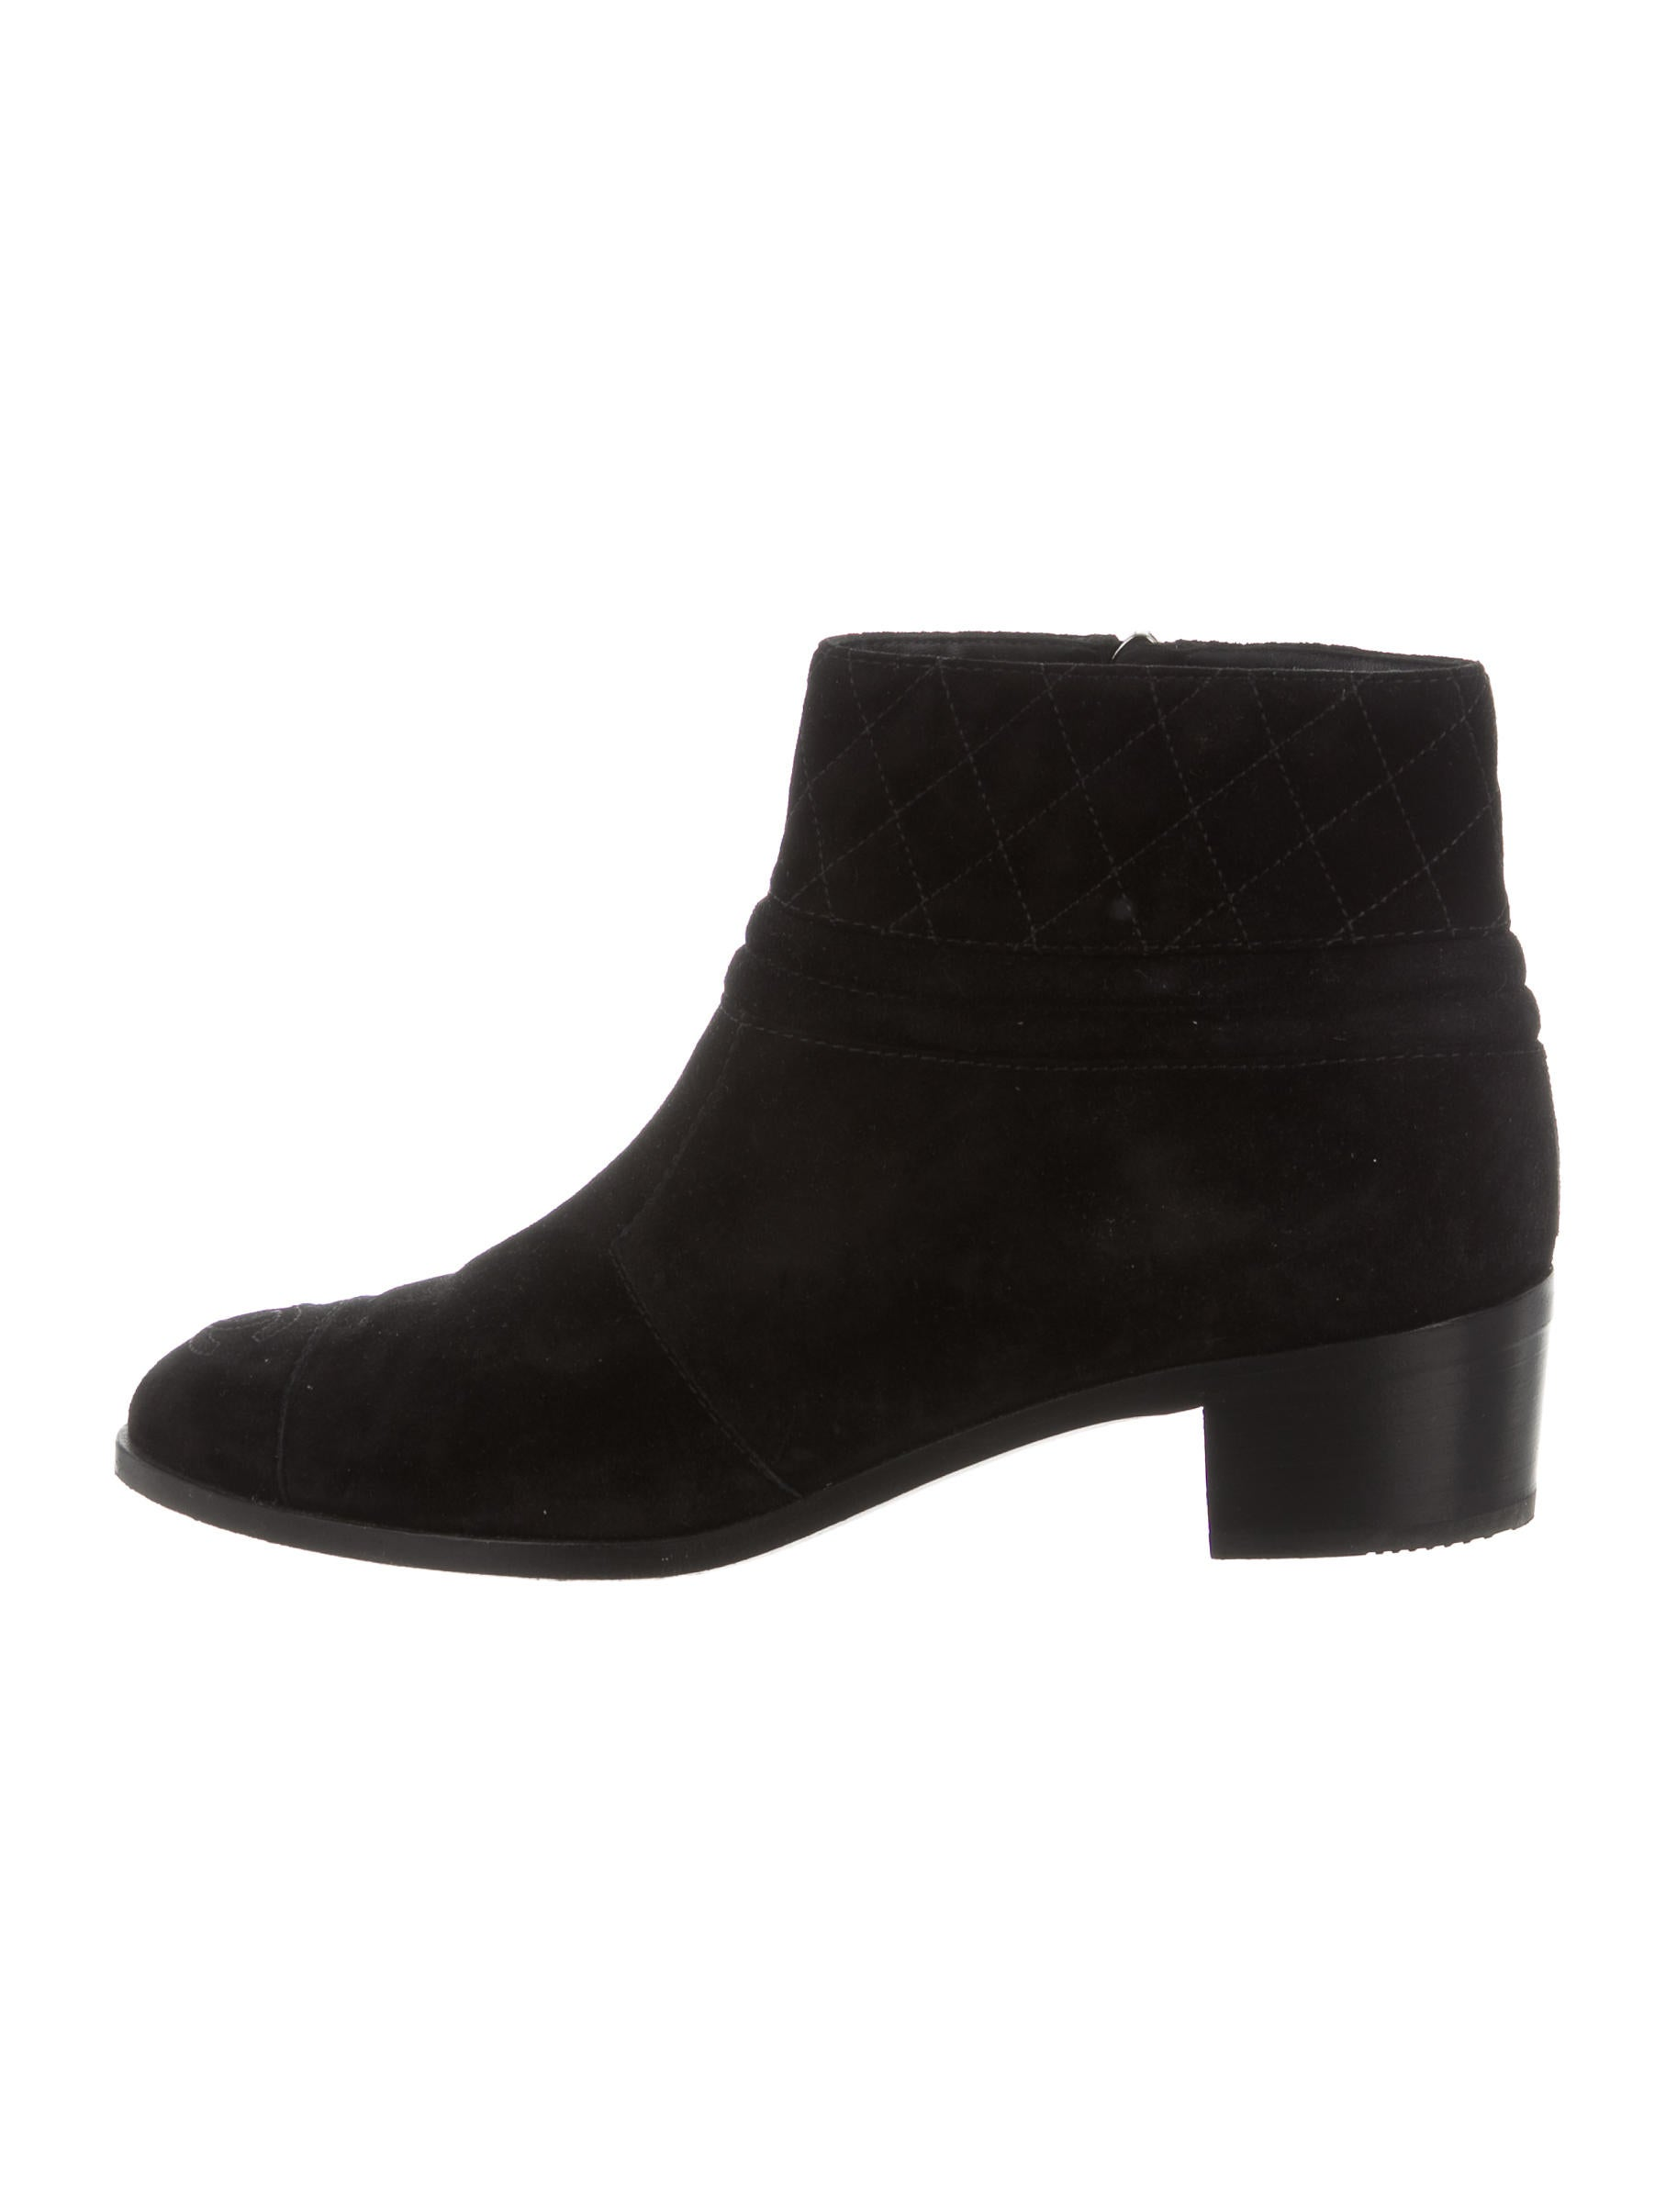 chanel suede ankle boots shoes cha169028 the realreal